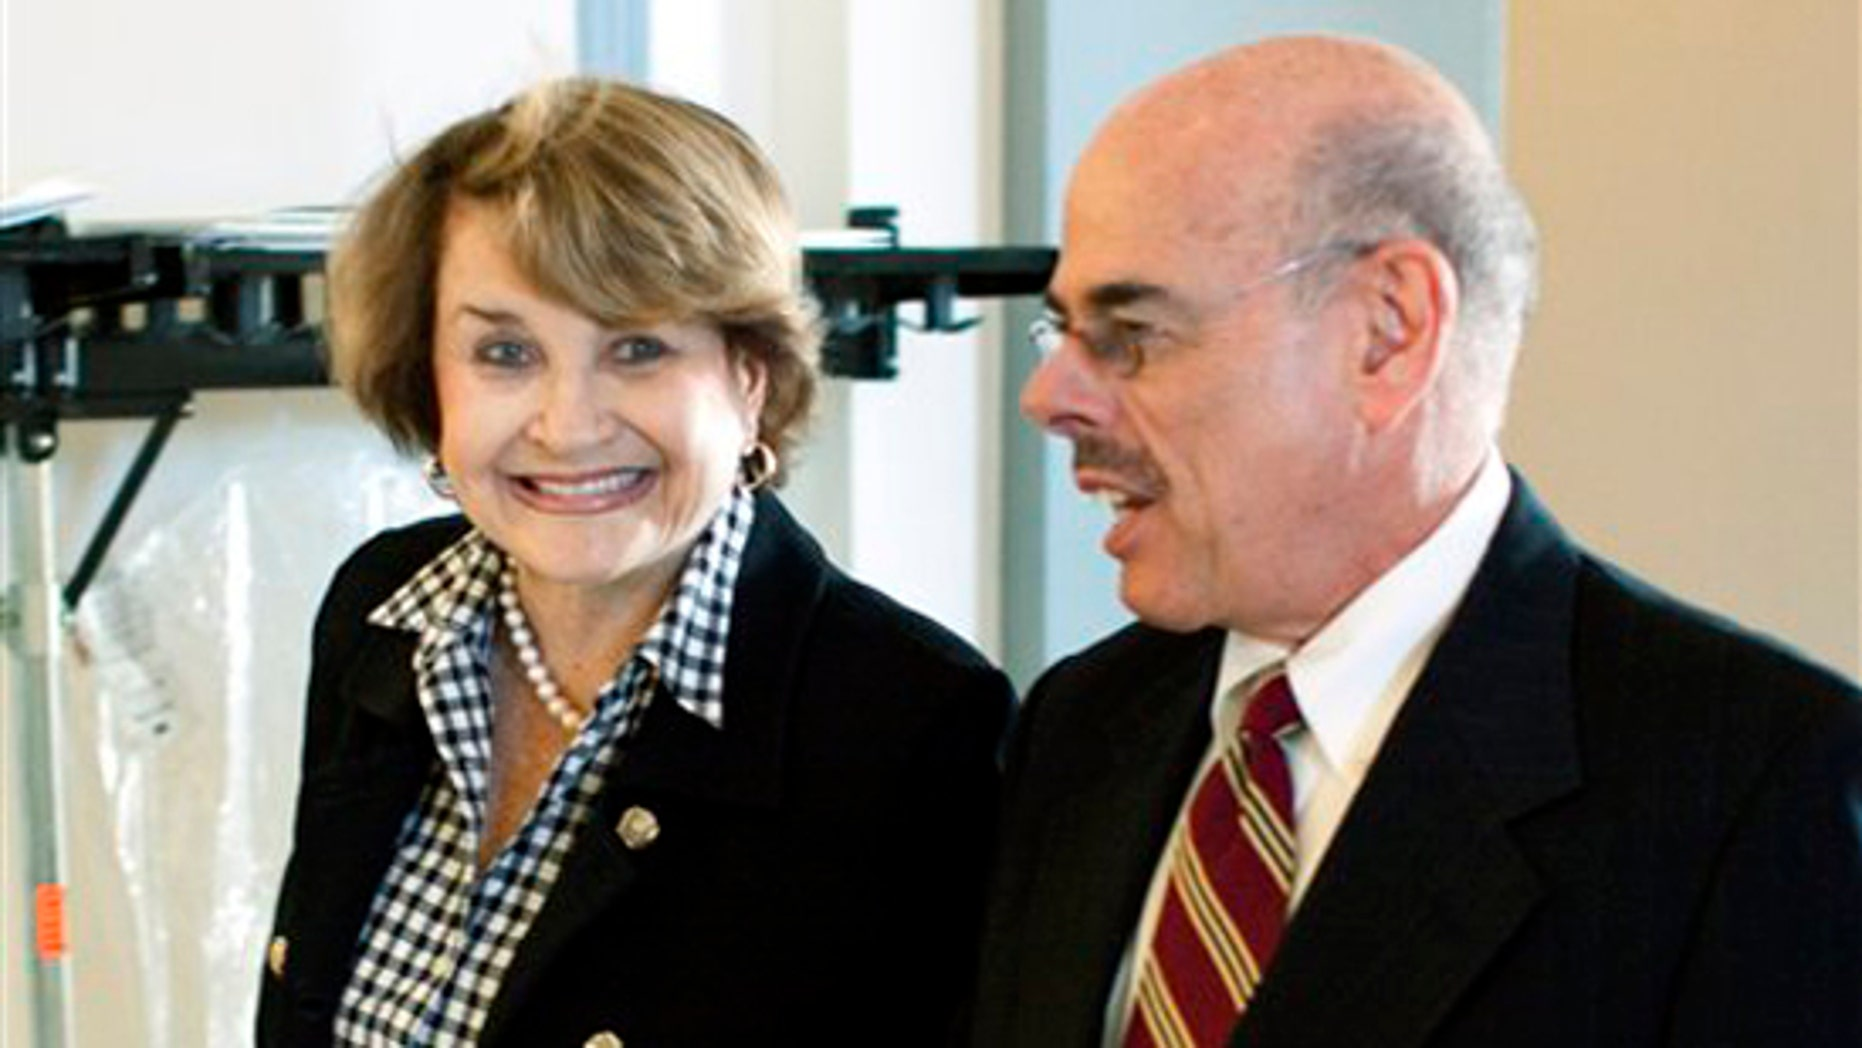 Chairman of the House Rules Committee, Rep. Louise Slaughter, D-N.Y., walks to the Democratic Caucus with Rep. Henry Waxman, D-Calif., on Capitol Hill in Washington, Friday, March 19, 2010.(AP)